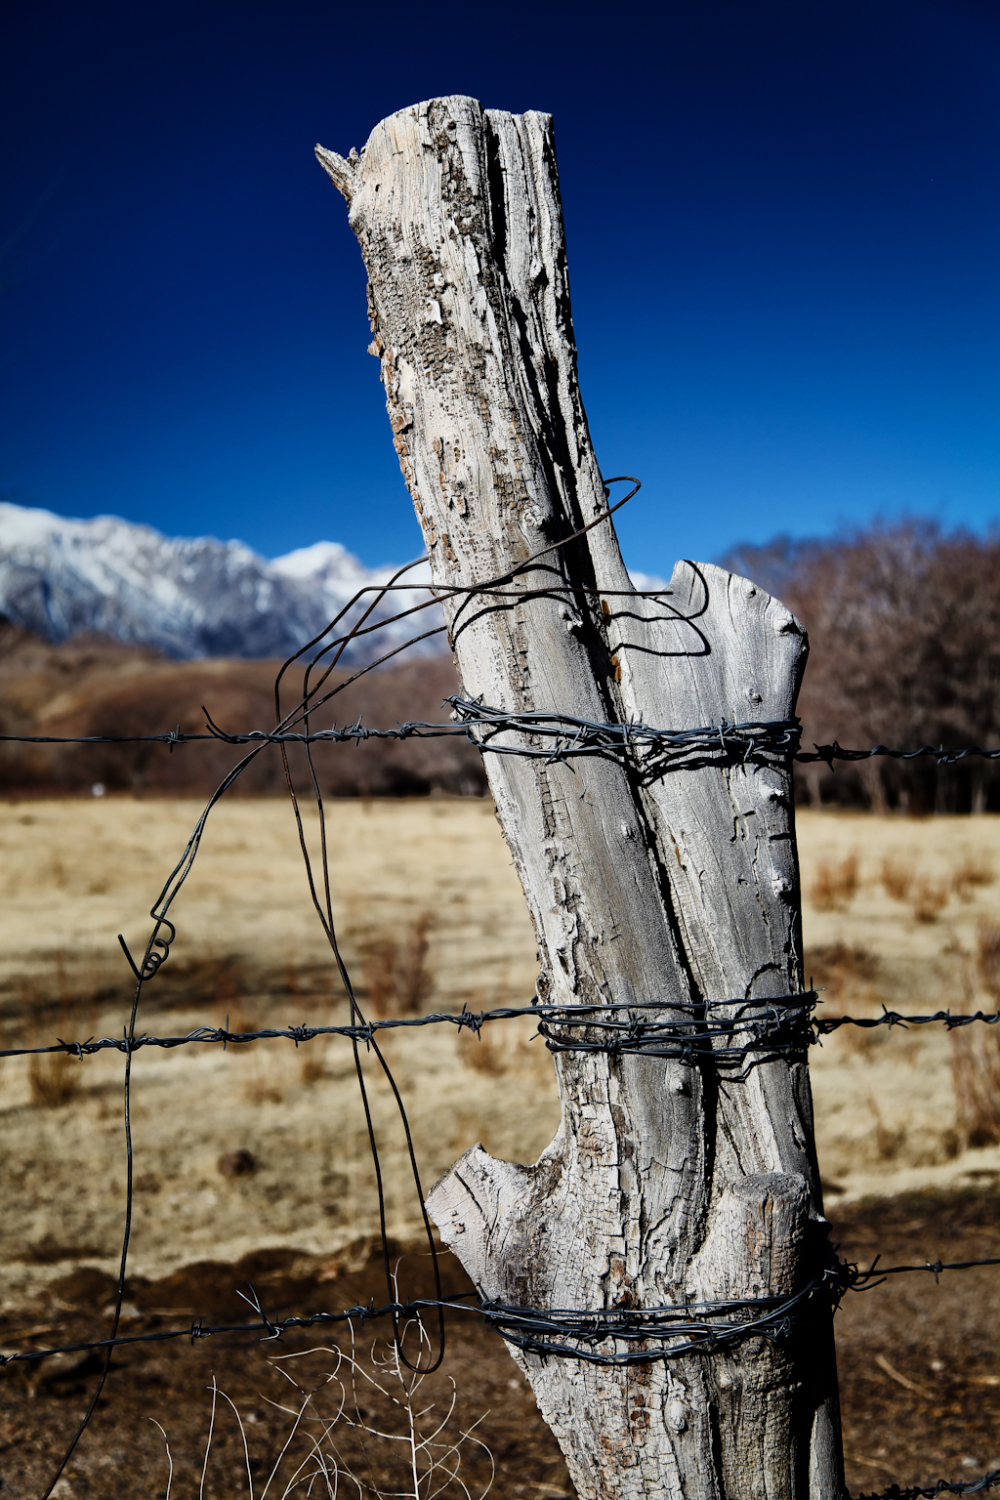 Fence post along highway in Lone Pine, CA